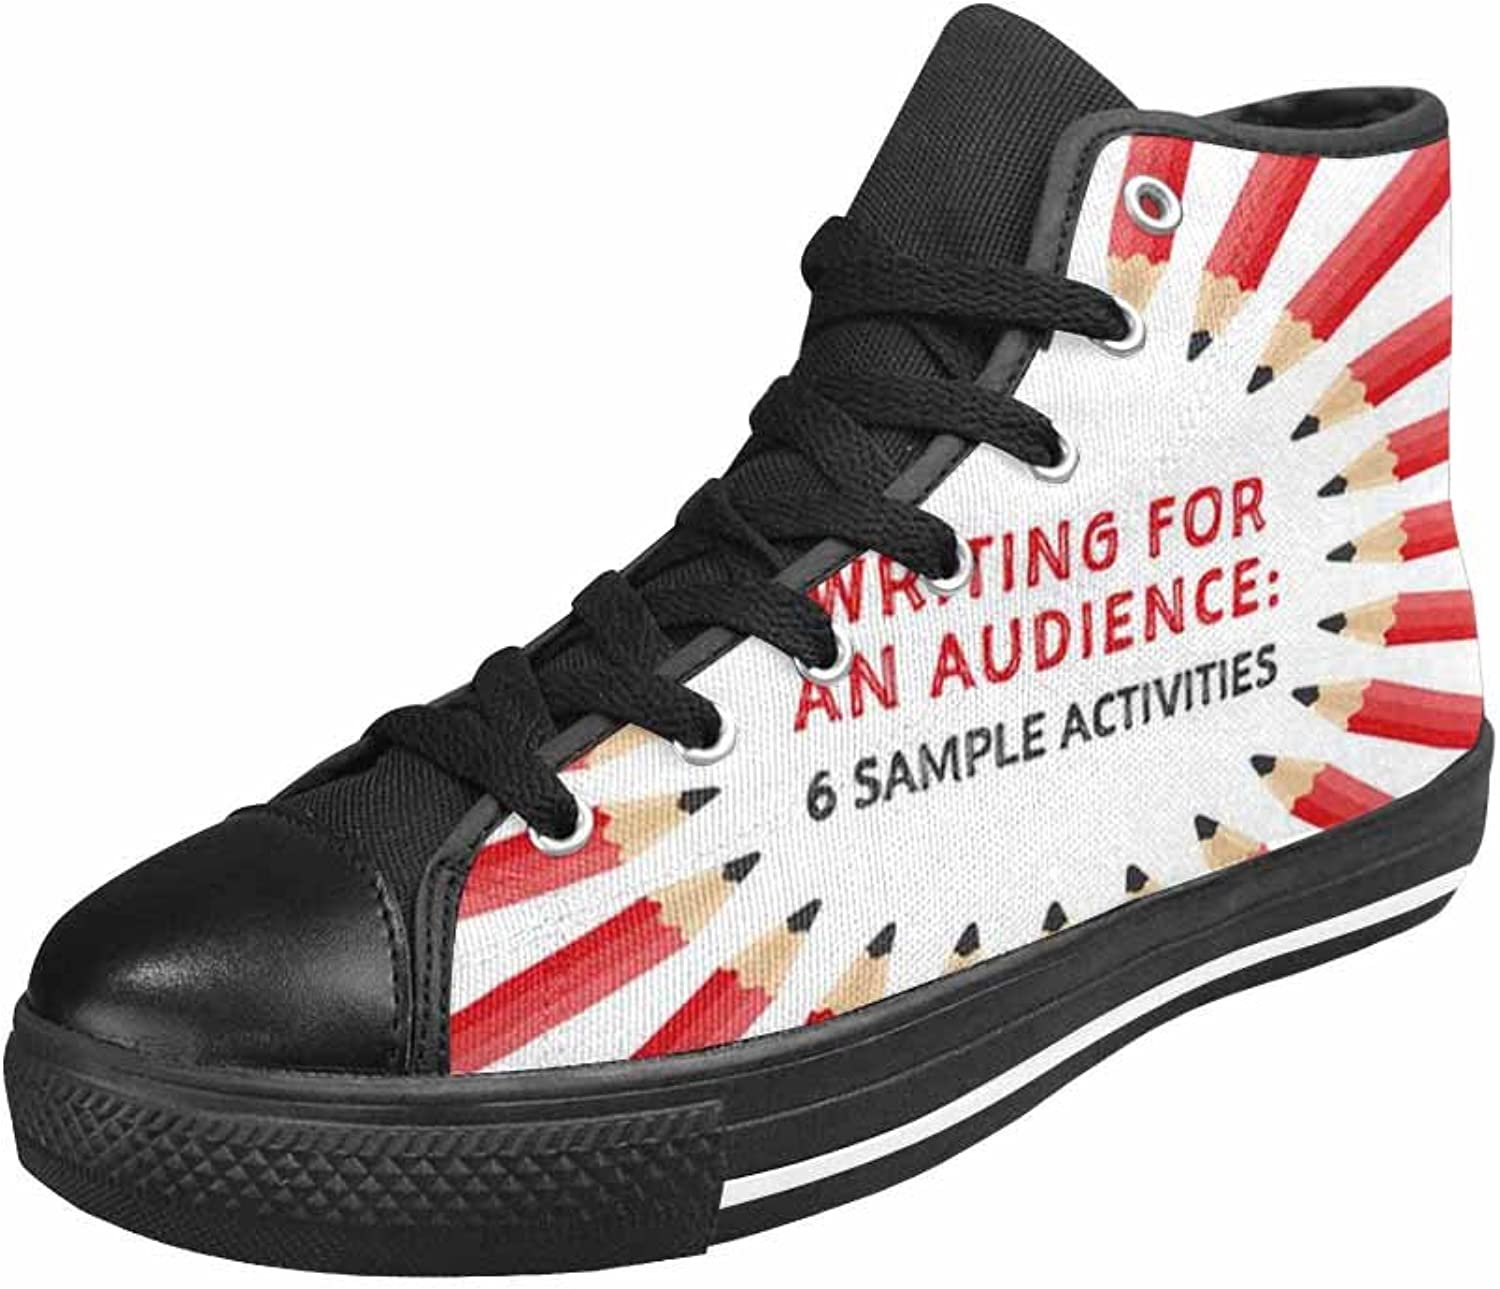 VIC Men's Classic Canvas shoes Sneakers High Top Lace Up Lightweight